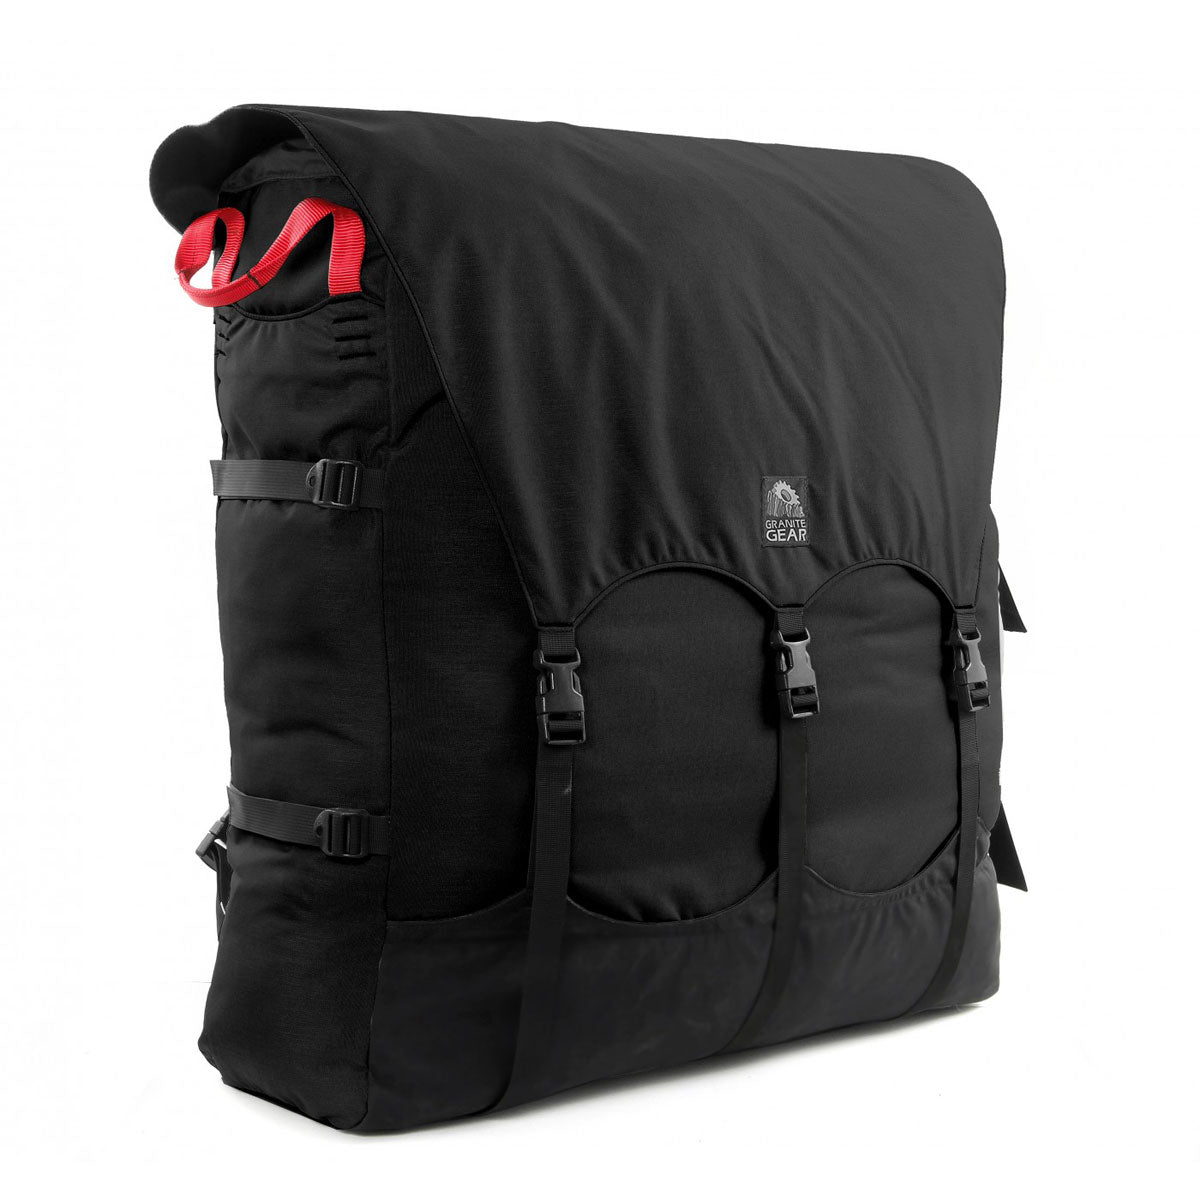 This pack refines the age-old portage pack design with an anatomically cut harness system, sternum strap, internal pockets, arched lid and drawcord overflow.